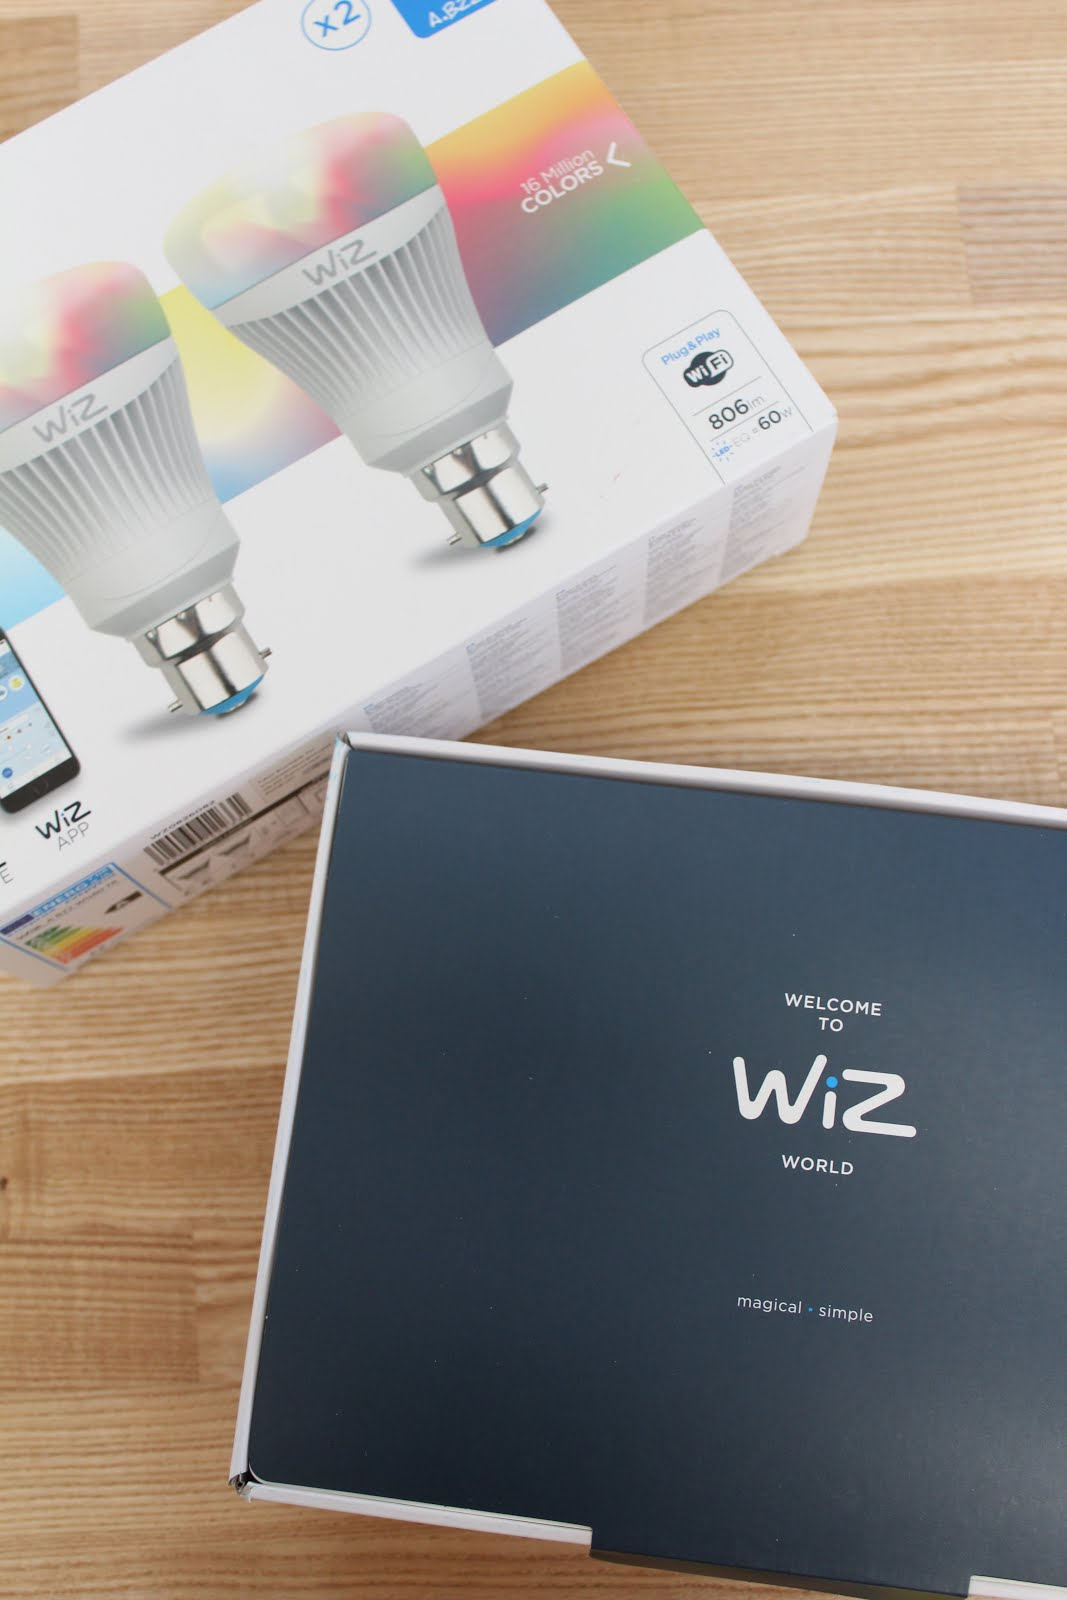 WiZ Smart Light Bulbs